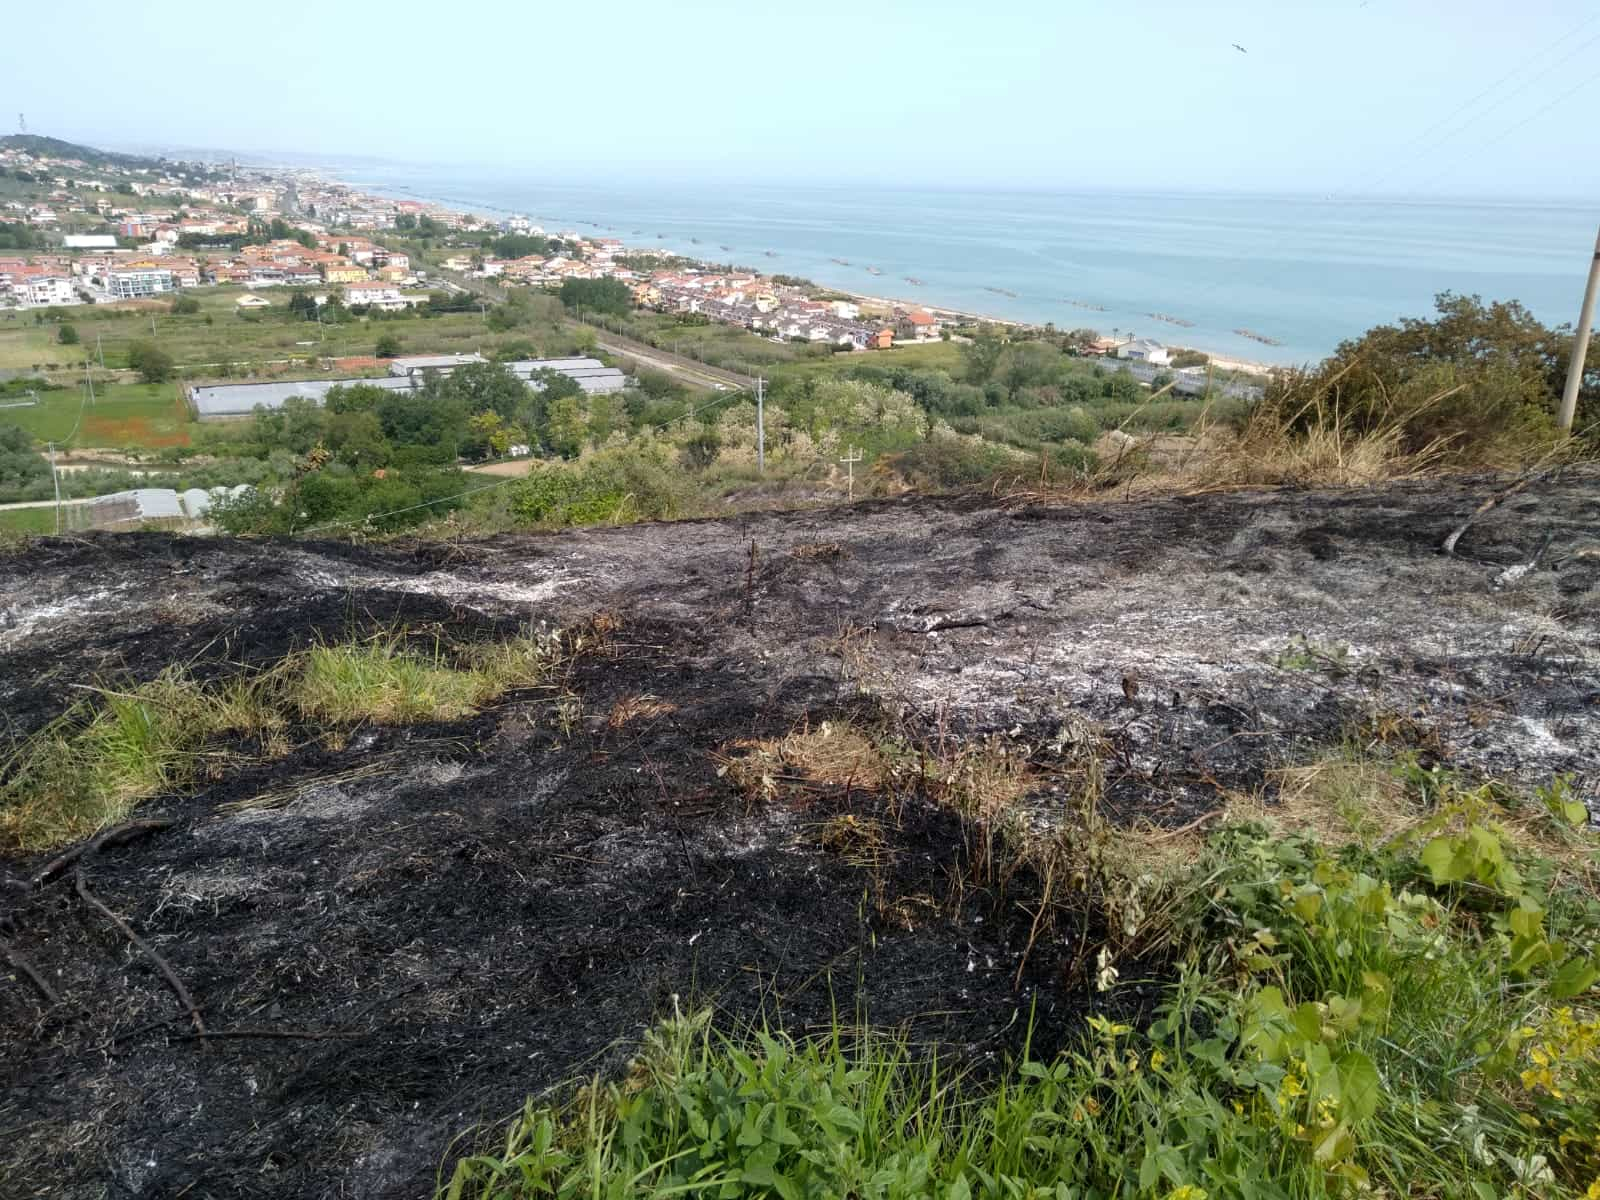 incendio cda lazzaretto2-2